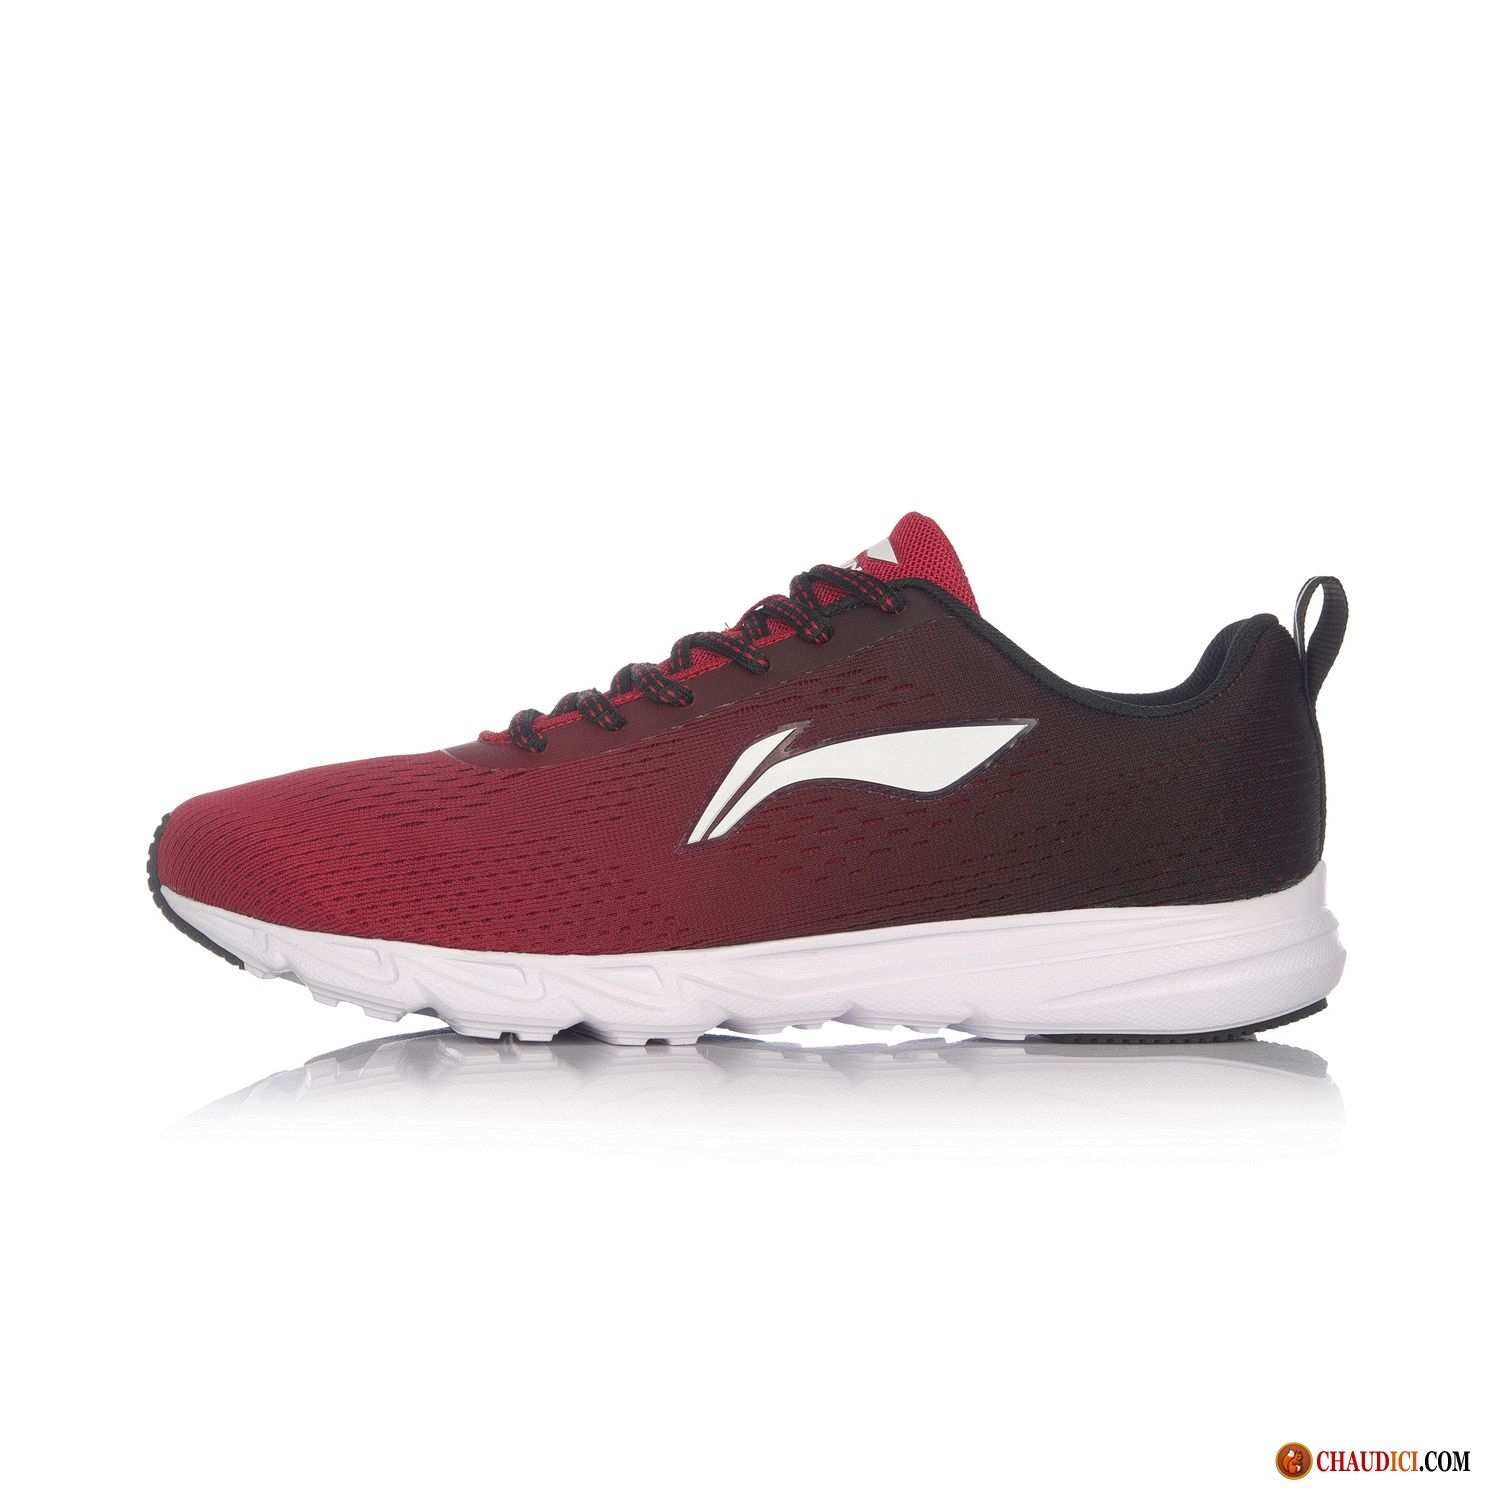 huge selection of 8a638 ed77d Running Chaussures Soldes Homme Léger Homme Poids Bordeaux R